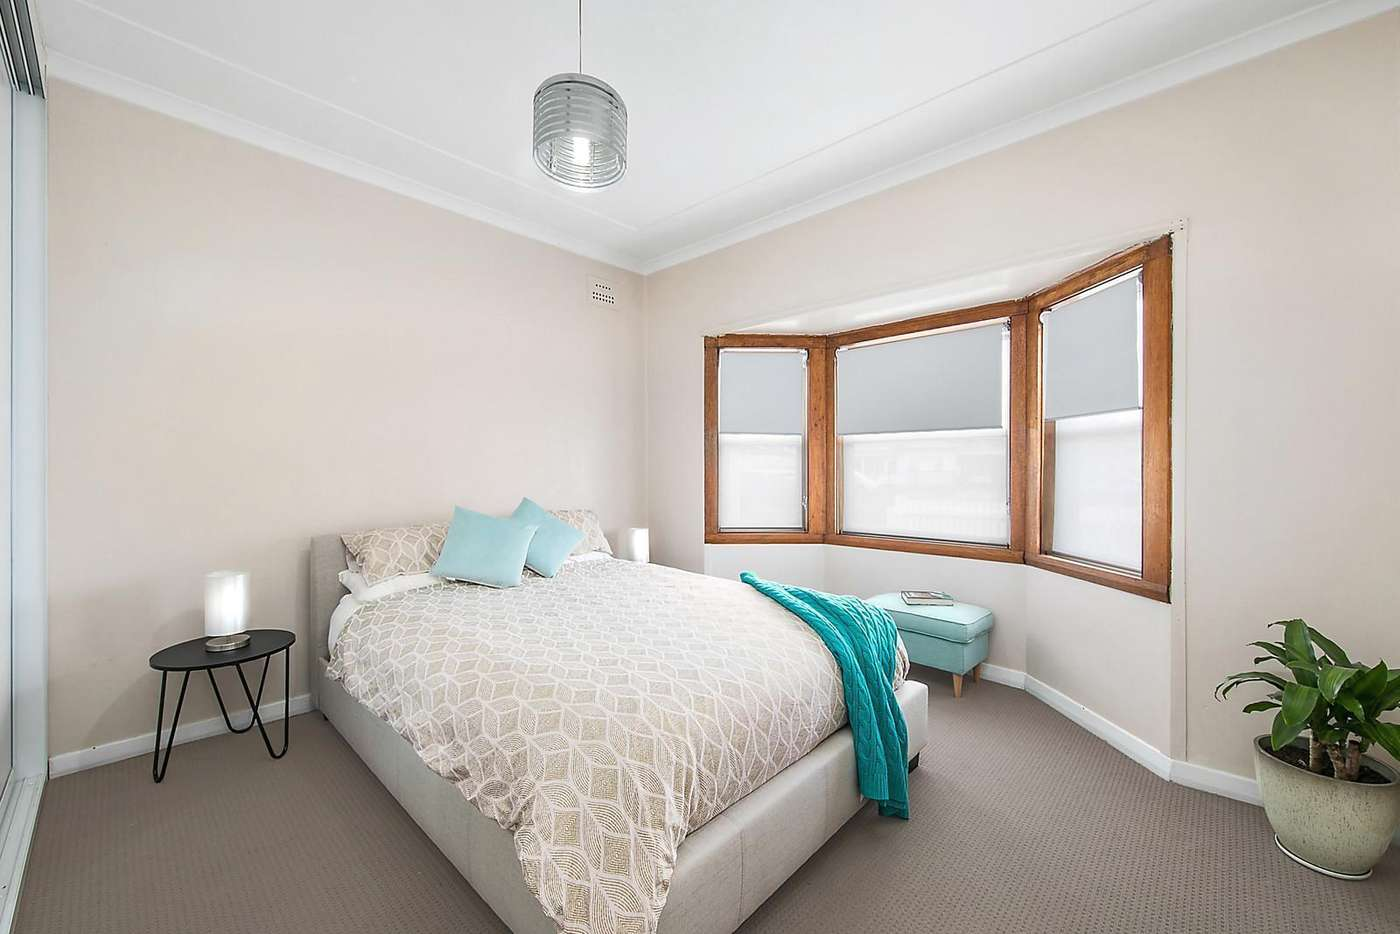 Fifth view of Homely house listing, 124 Bridges Road, New Lambton NSW 2305